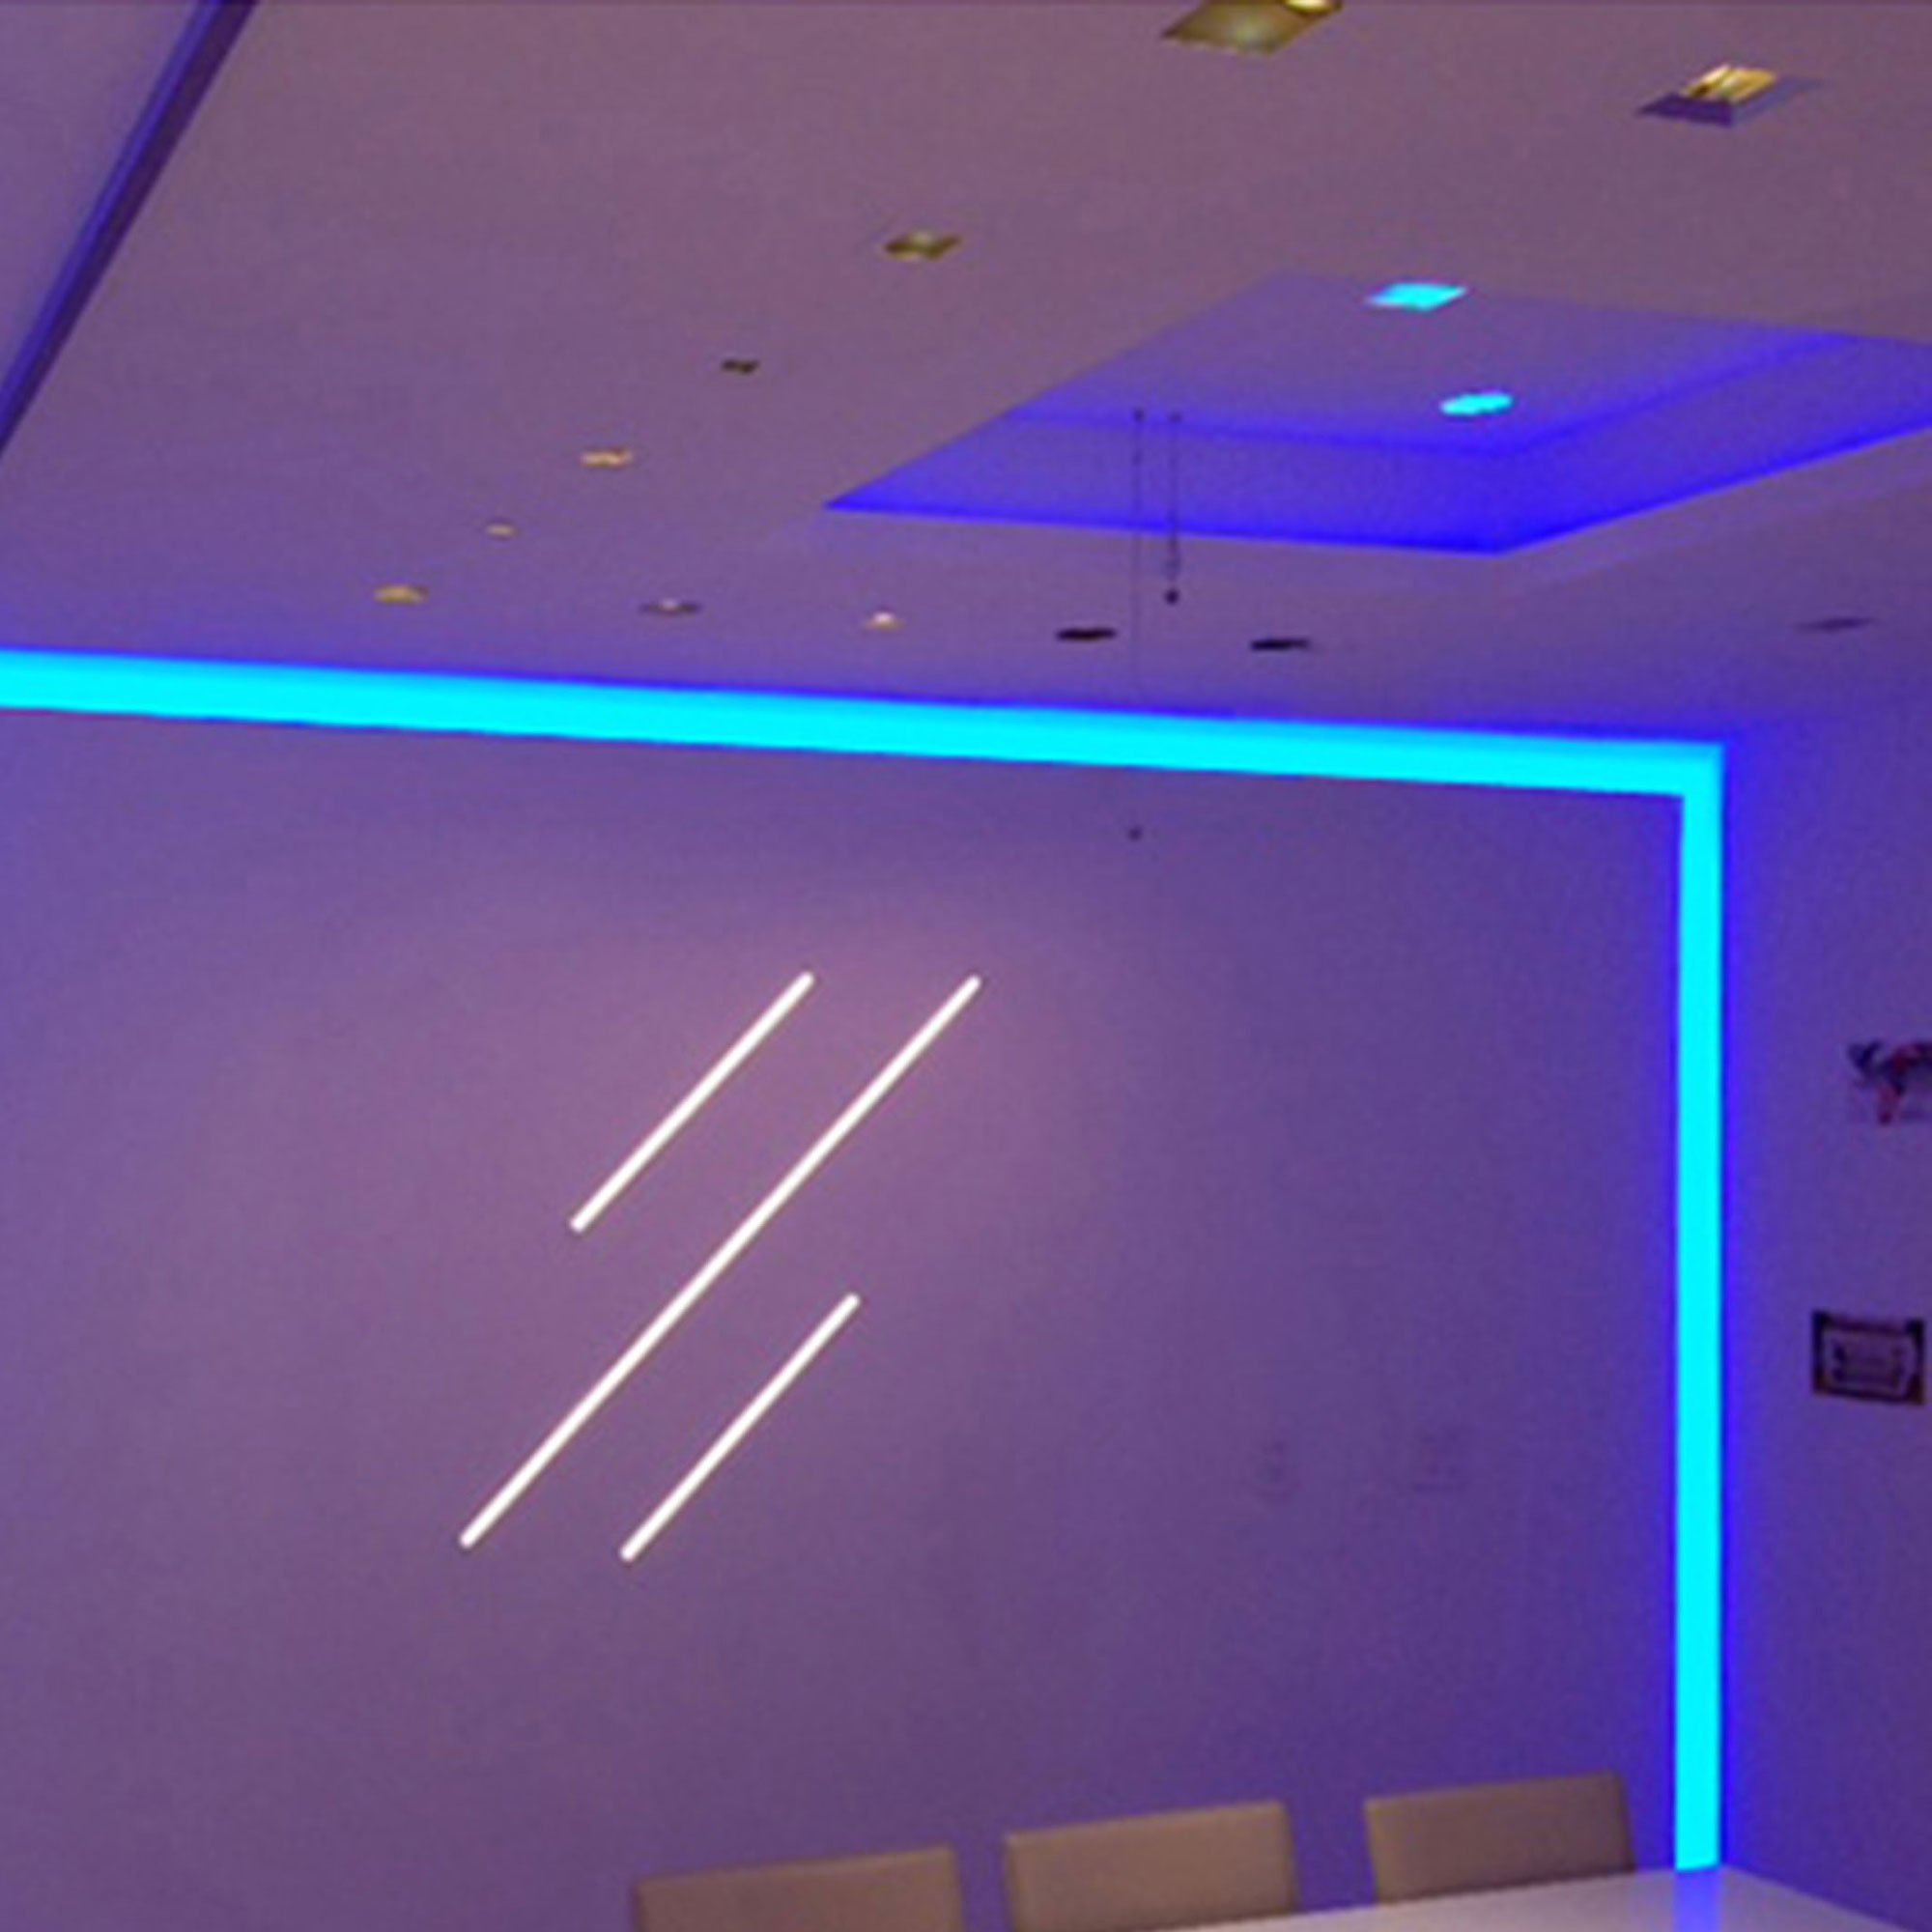 Lighting Rgb Verge Wall 6w Rgb White Plaster In System By Pureedge Lighting Vg 6wdc 5ft Rgbw